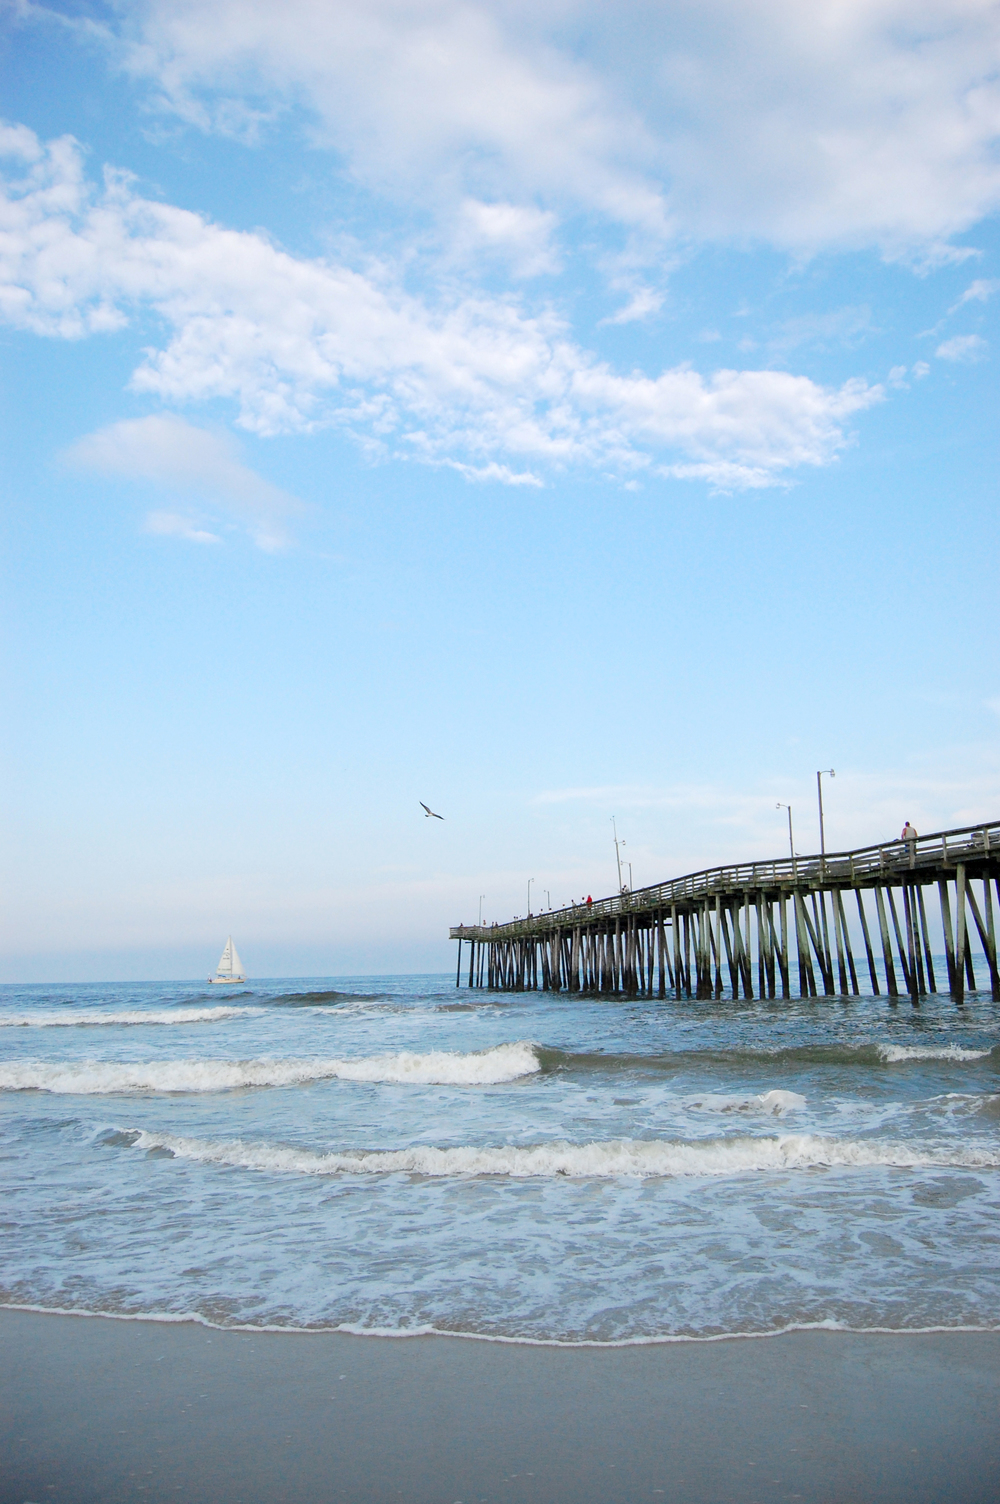 <style> .virgina beach photography { display: none } </style>